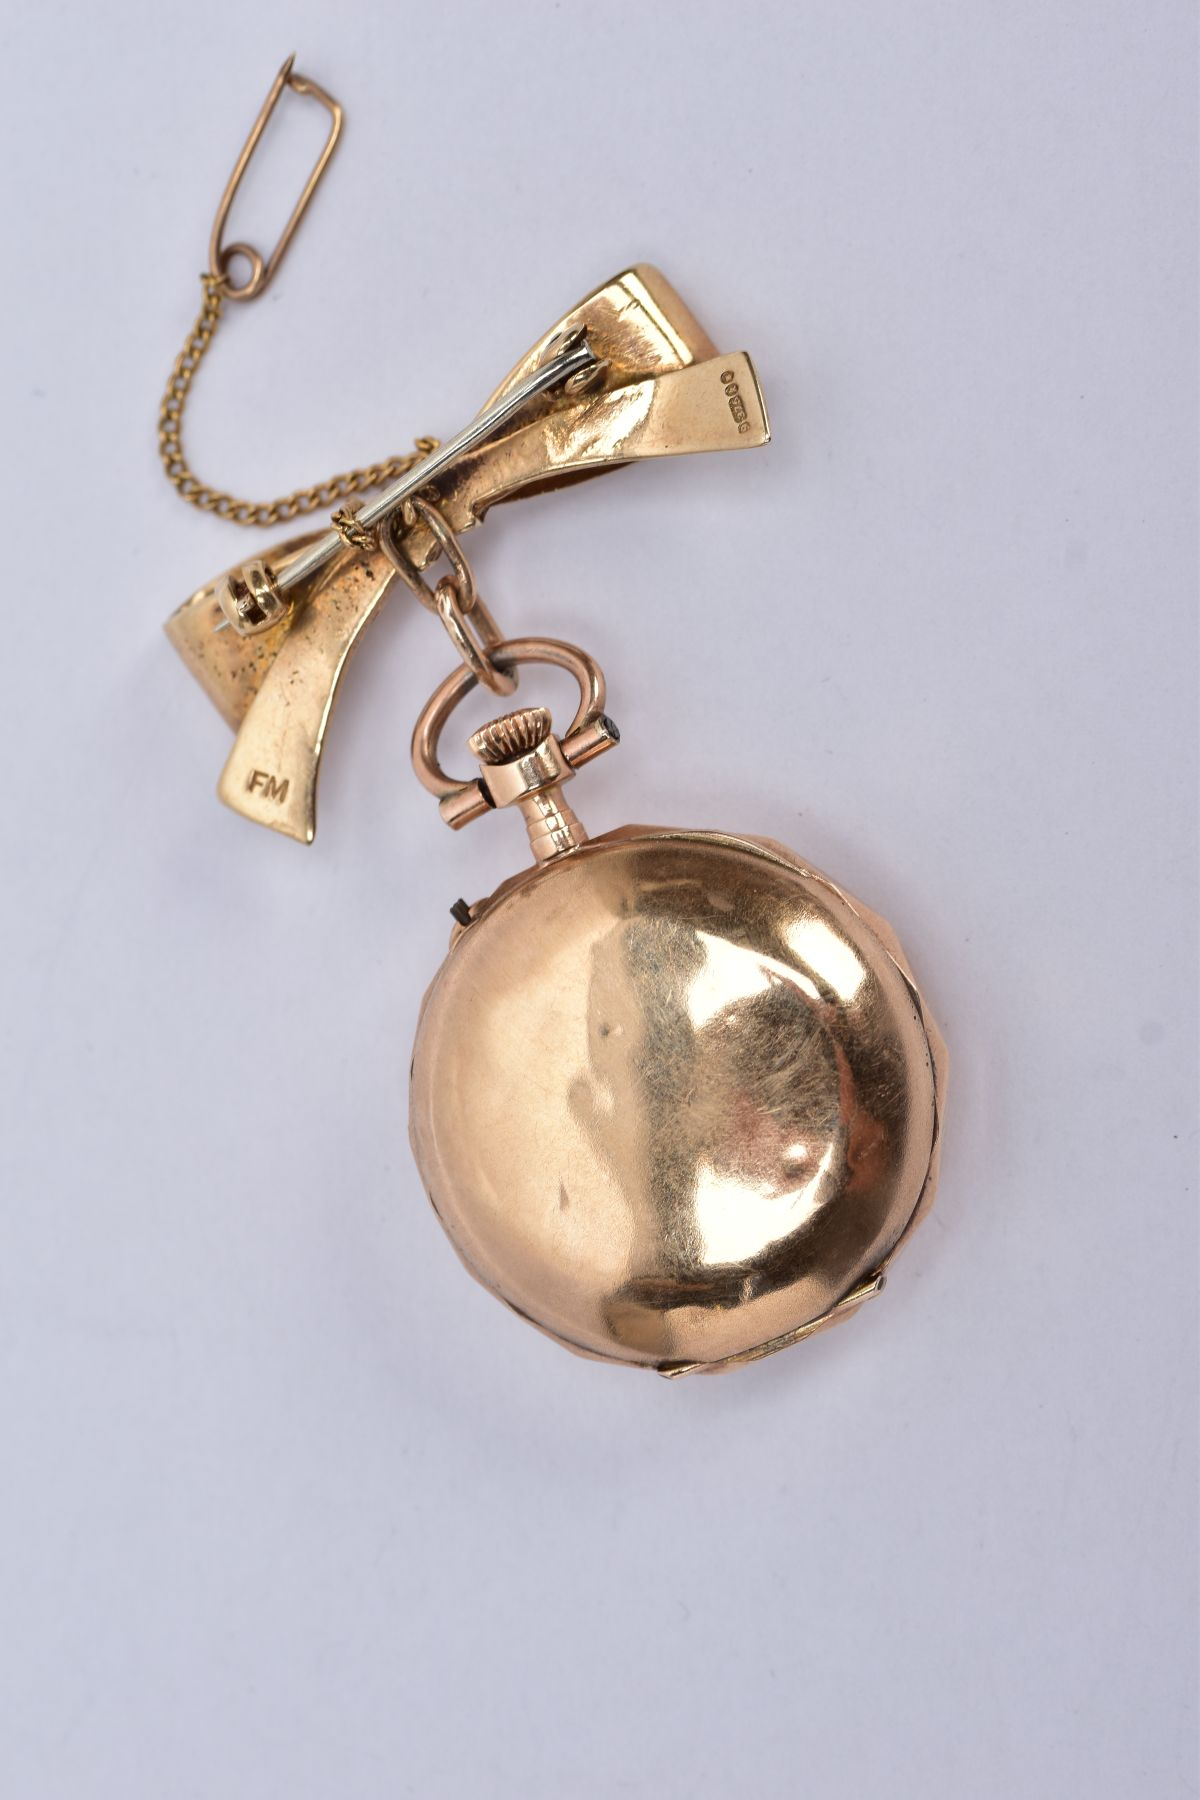 AN EARLY 20TH CENTURY GOLD AND DIAMOND LADY'S FOB WATCH, white enamel dial signed 'Elba', case - Image 2 of 5